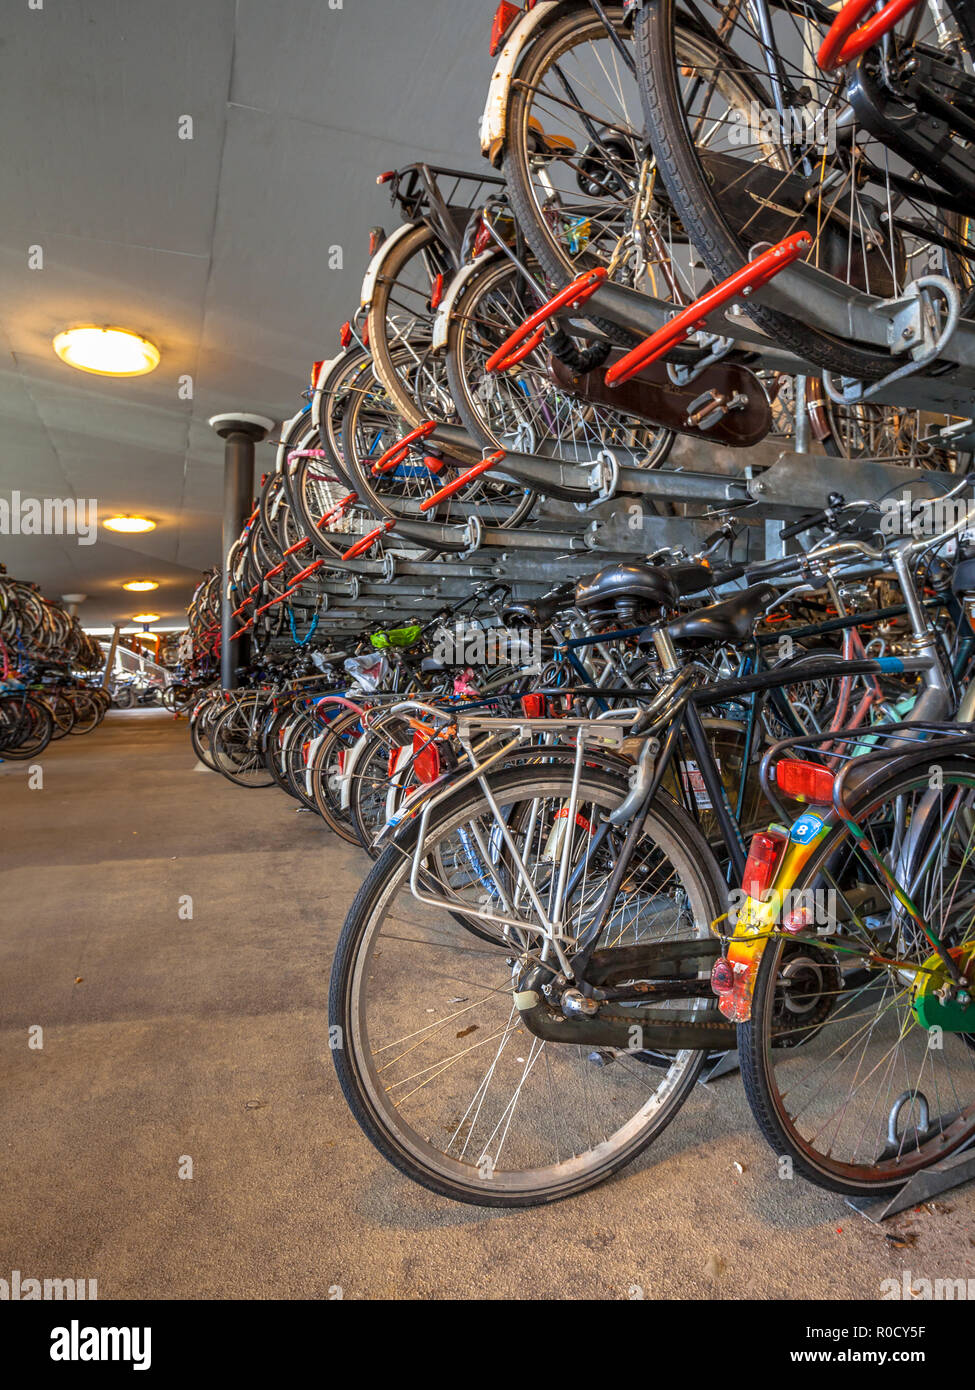 Bicycle parking on Groningen central station. The city of Groningen has been voted ' most cycling friendly city of the Netherlands' for 3 years in a r - Stock Image